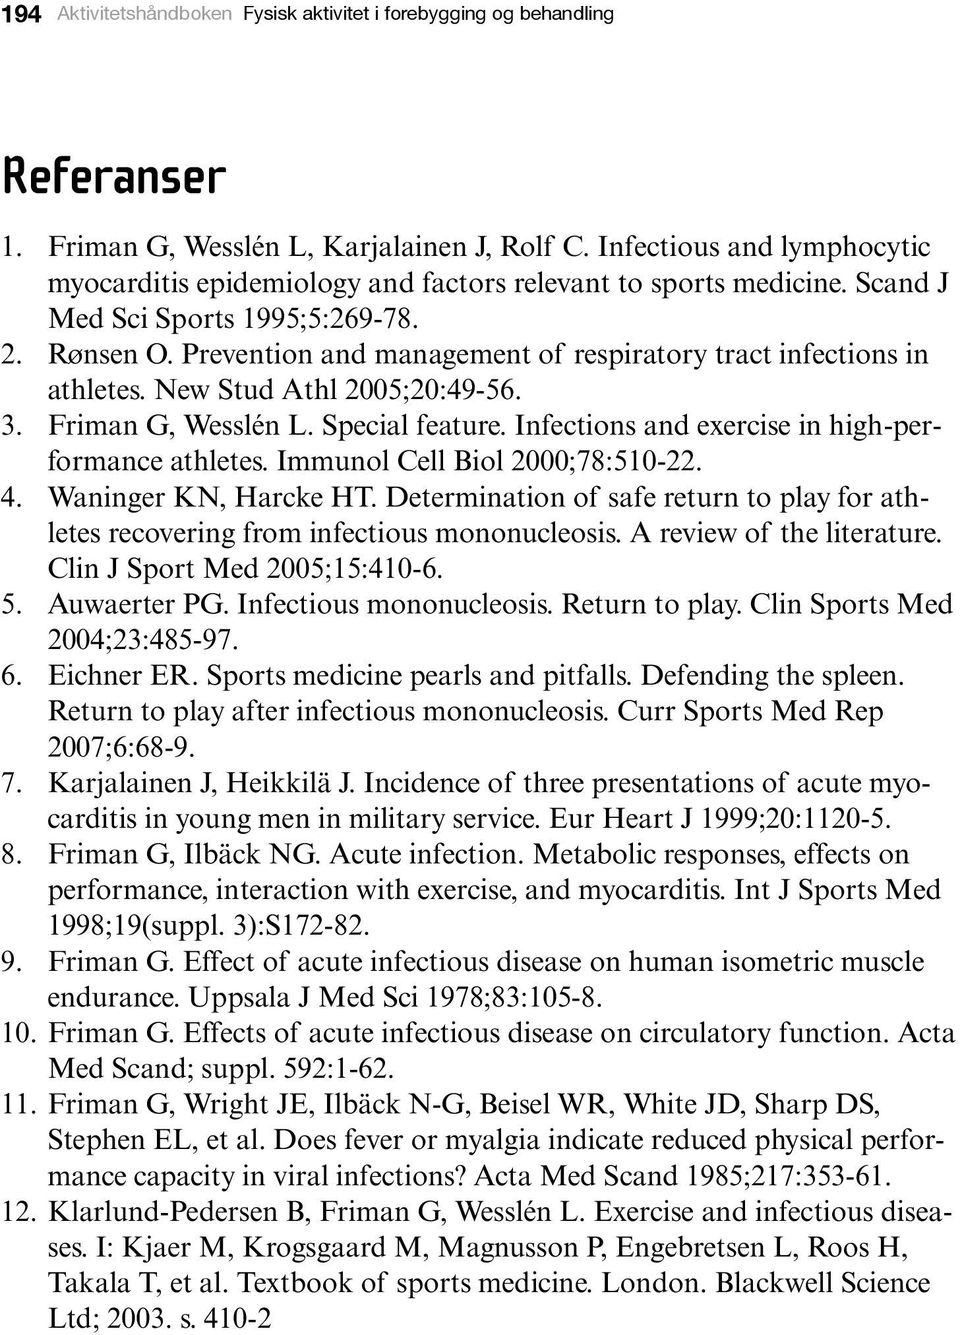 Prevention and management of respiratory tract infections in athletes. New Stud Athl 2005;20:49-56. 3. Friman G, Wesslén L. Special feature. Infections and exercise in high-performance athletes.